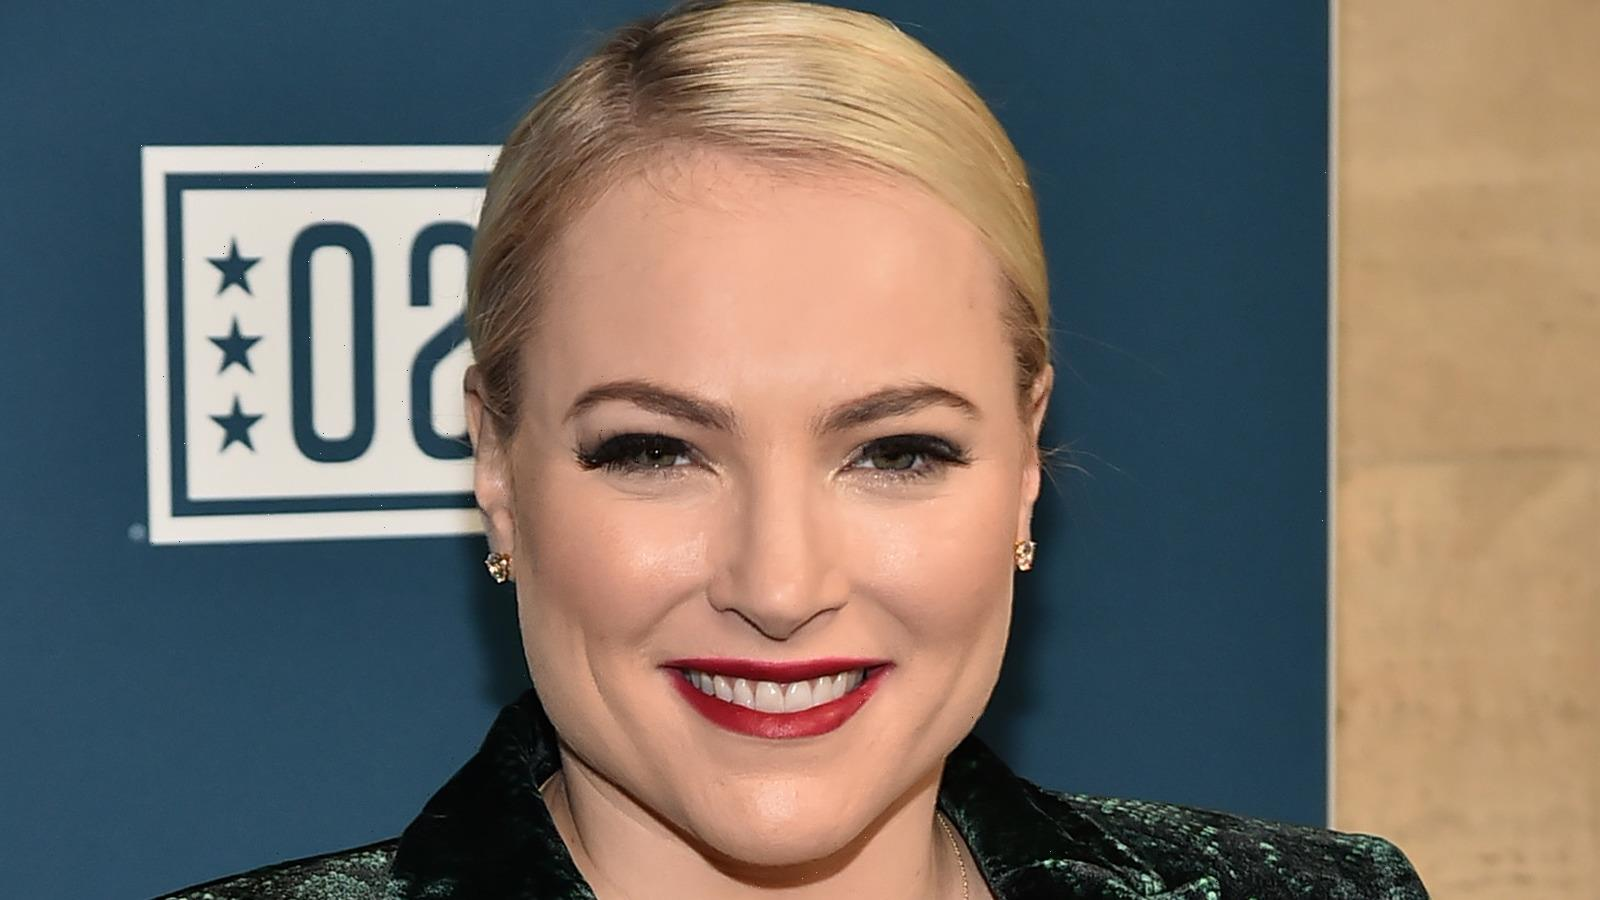 The Expensive Fashion Choices Of Meghan McCain